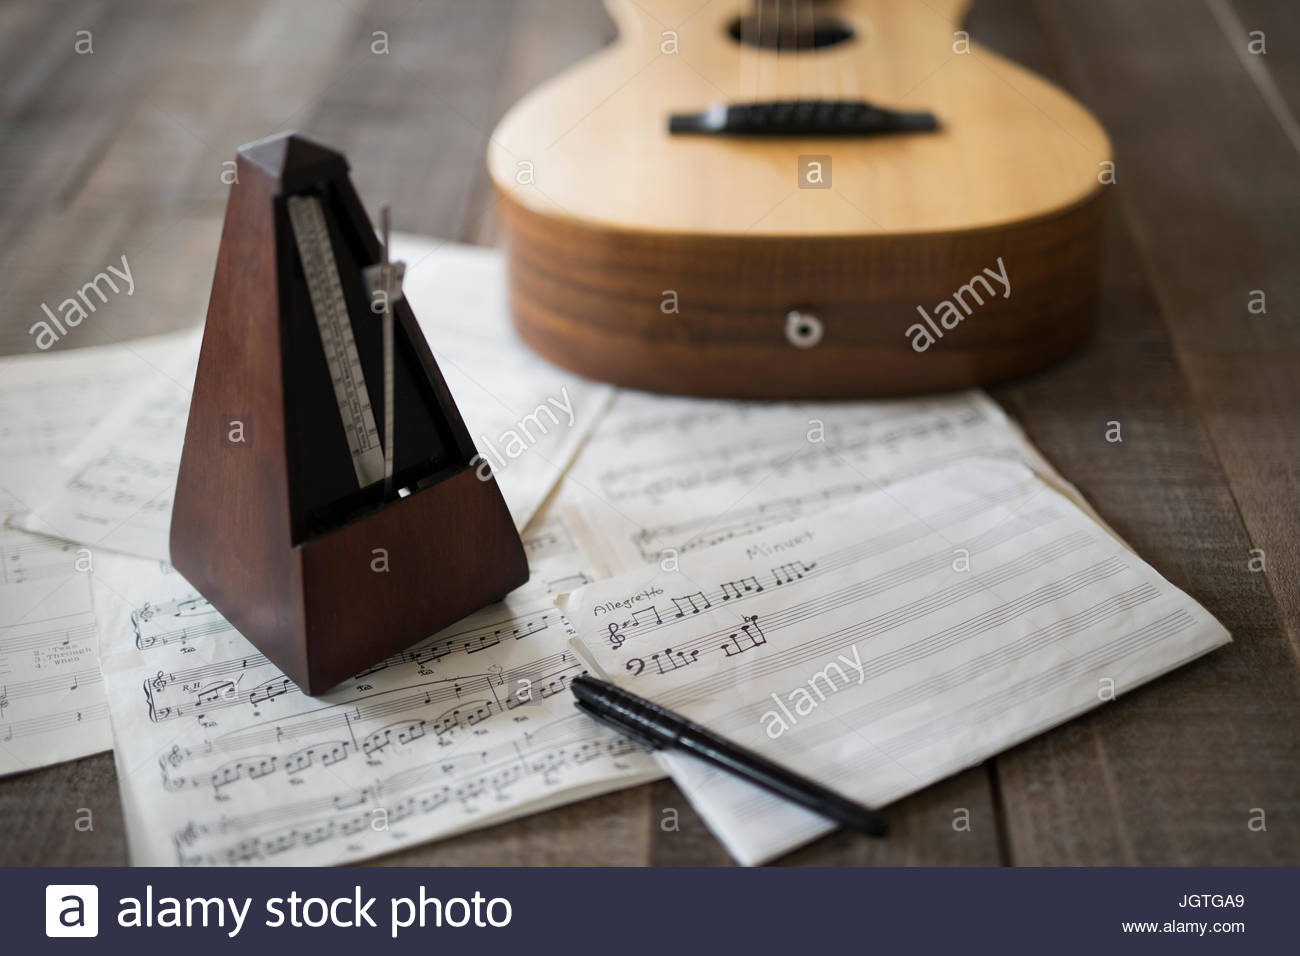 Still life of metronome, sheet music and guitar - Stock Image